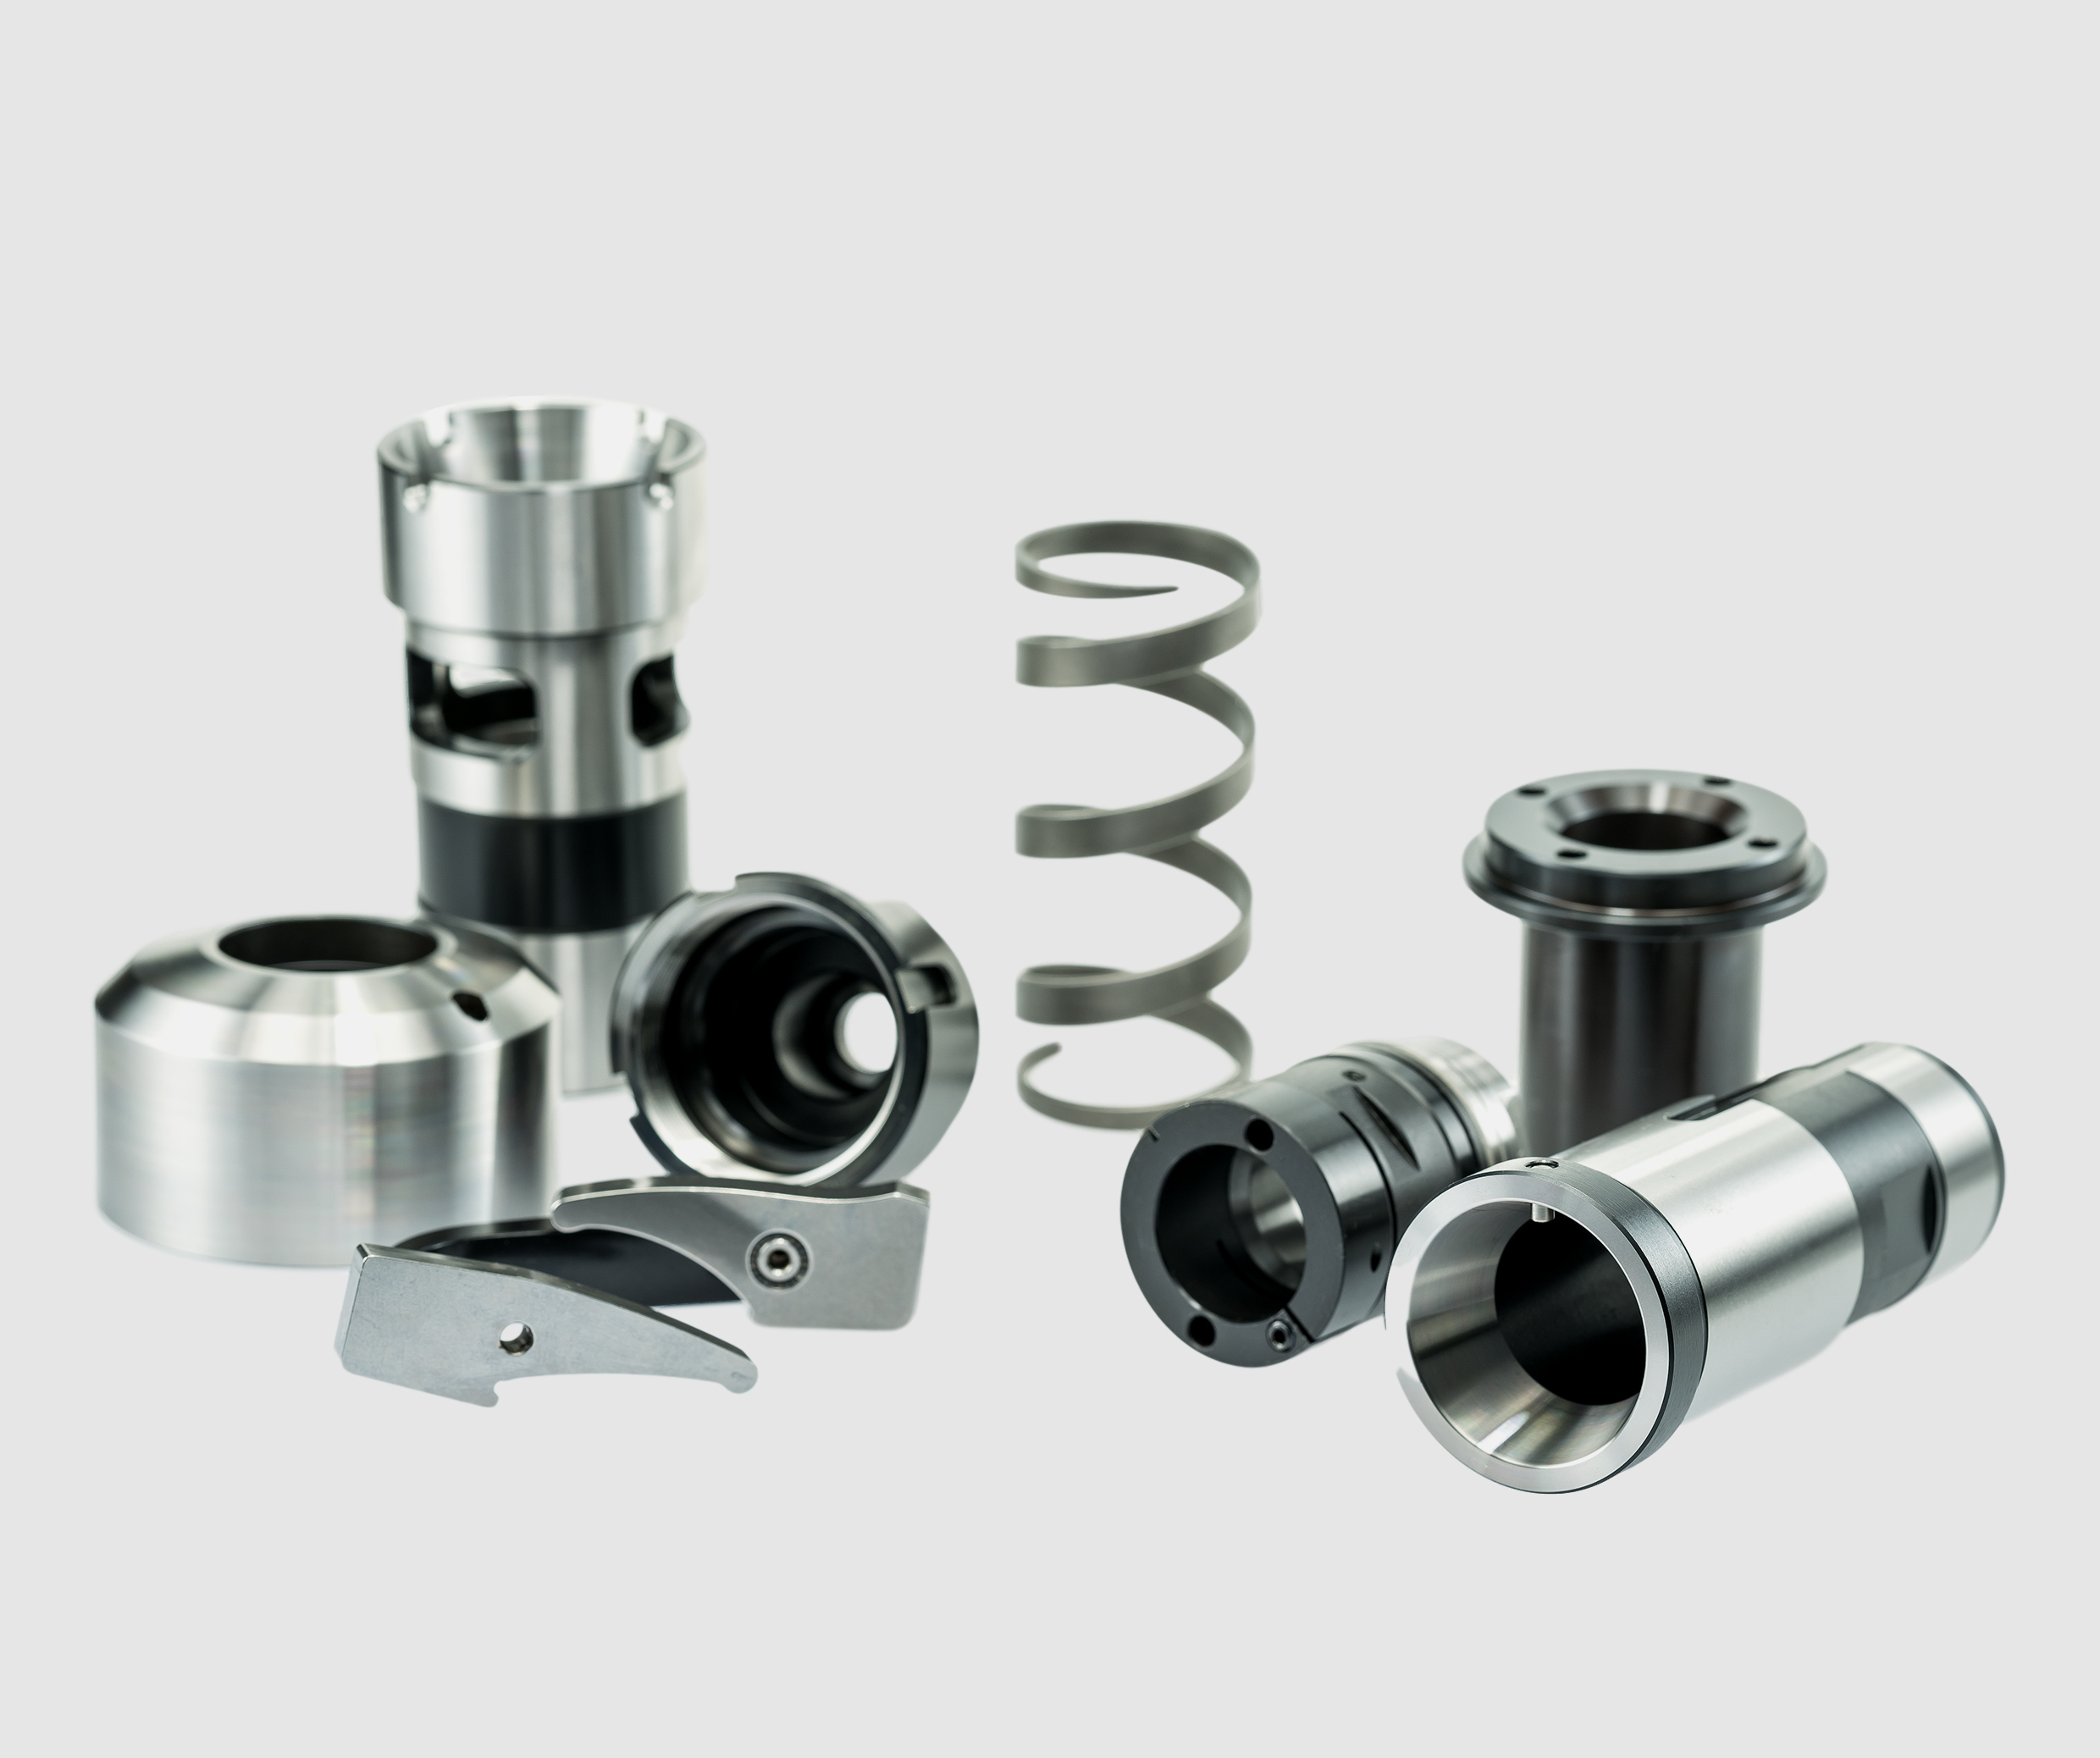 Spindle Attachments